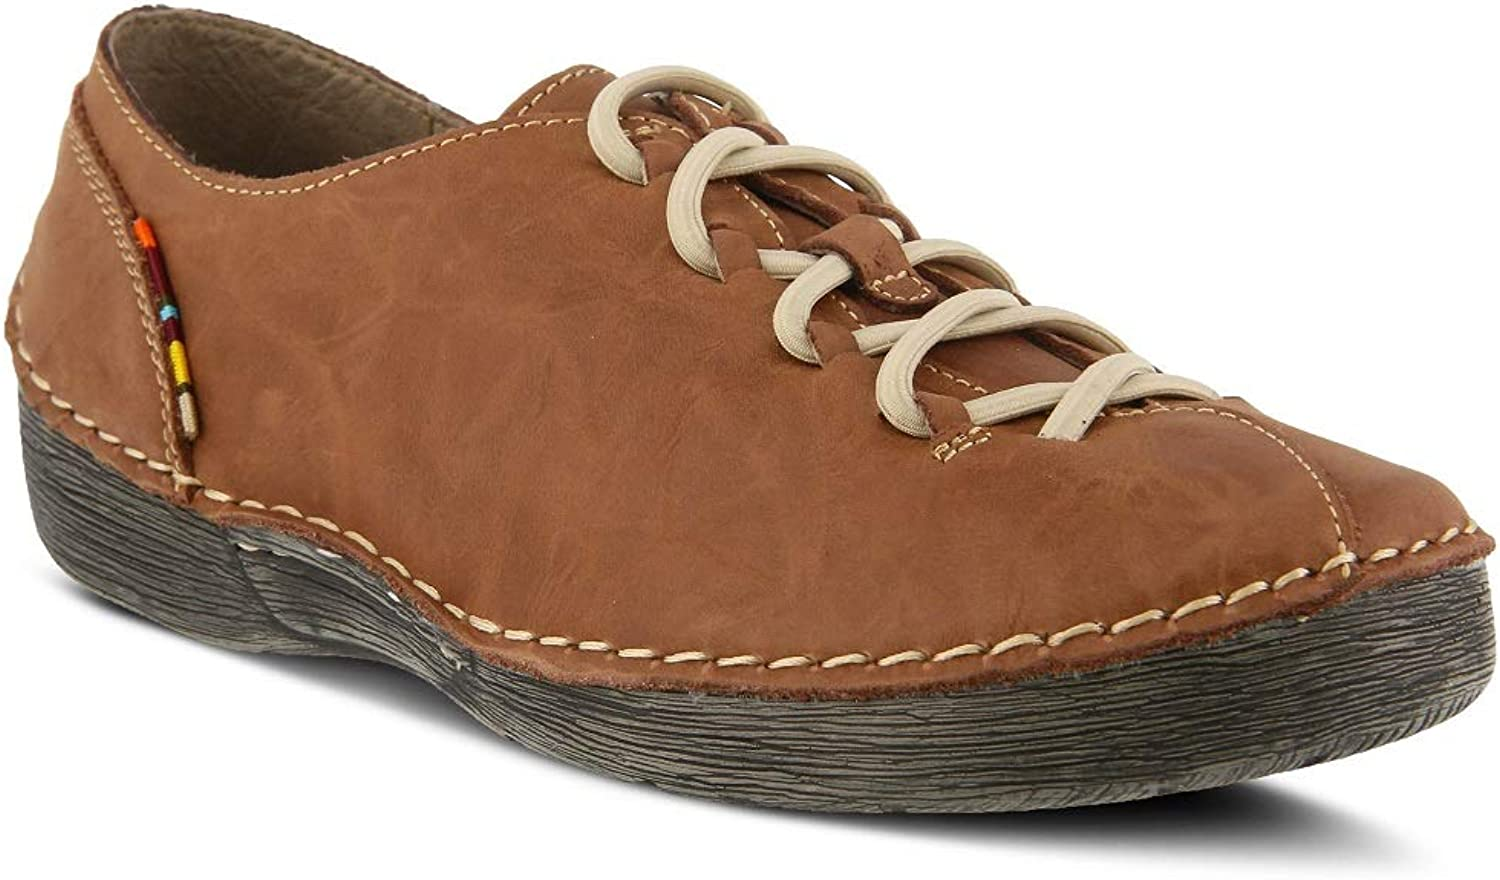 Spring Step Women's Carhop shoes   color Brown Nubuck   Leather shoes